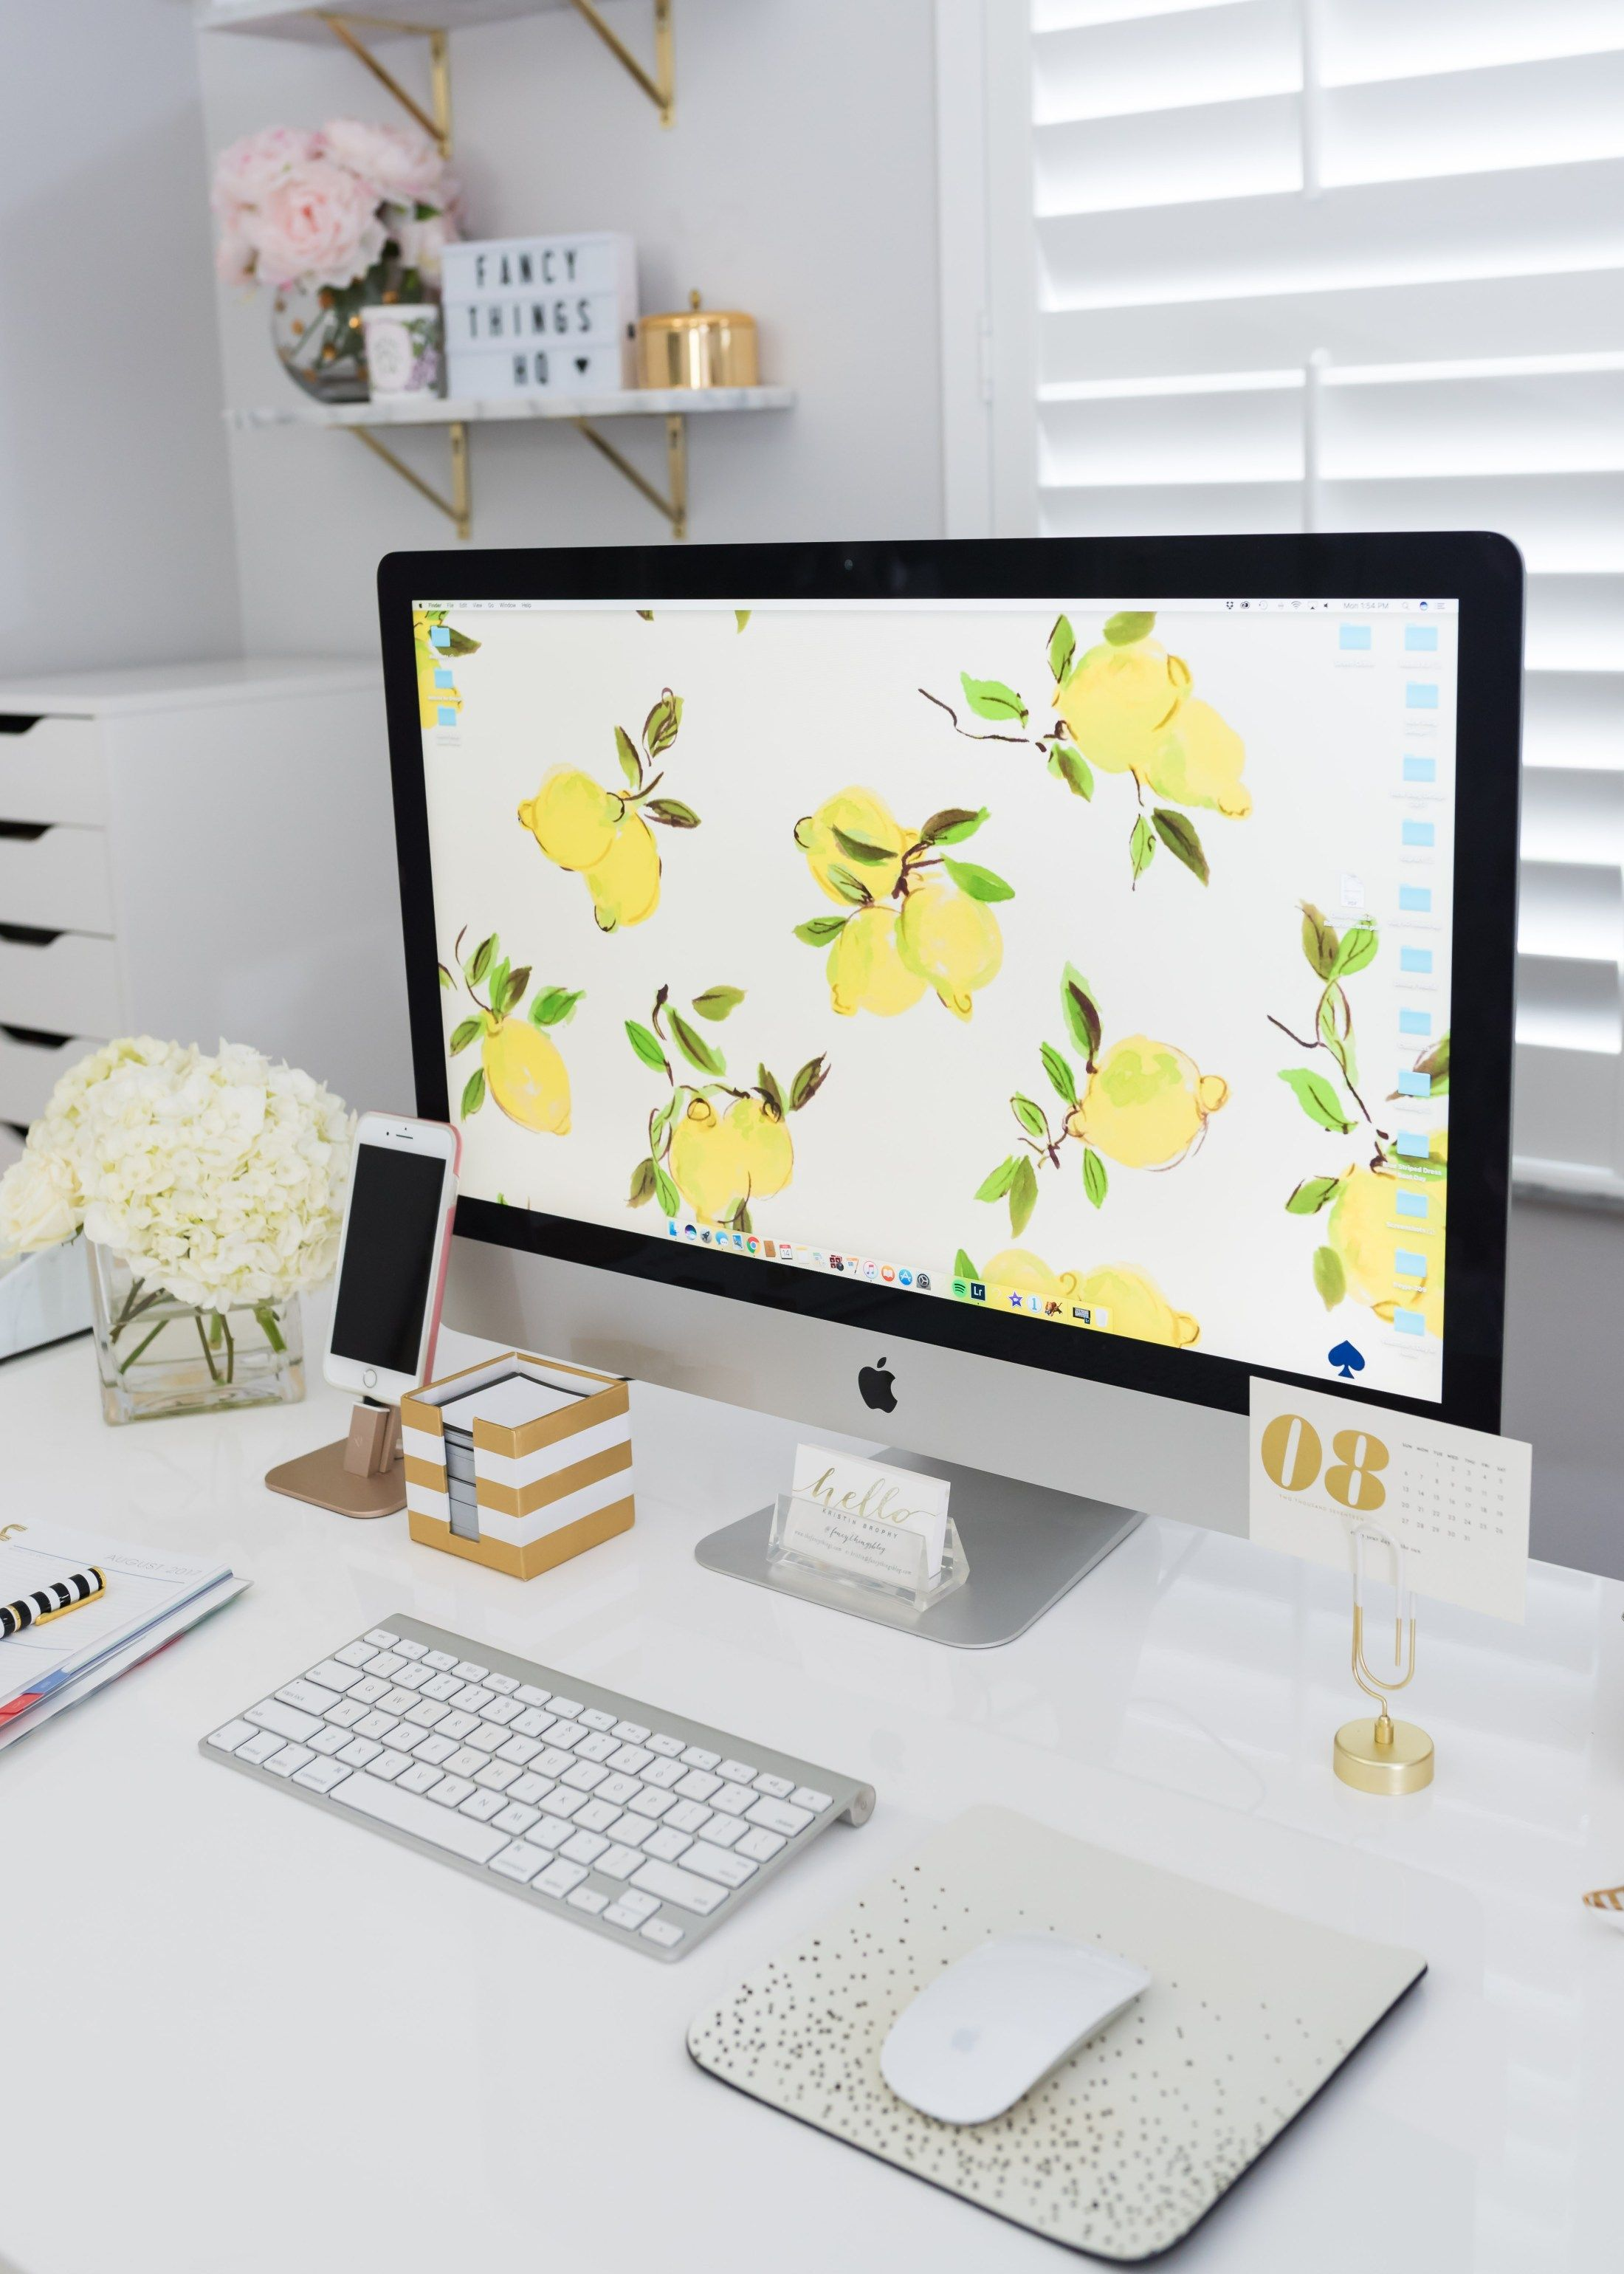 Cute Office Supplies and Decor The Office Decorations